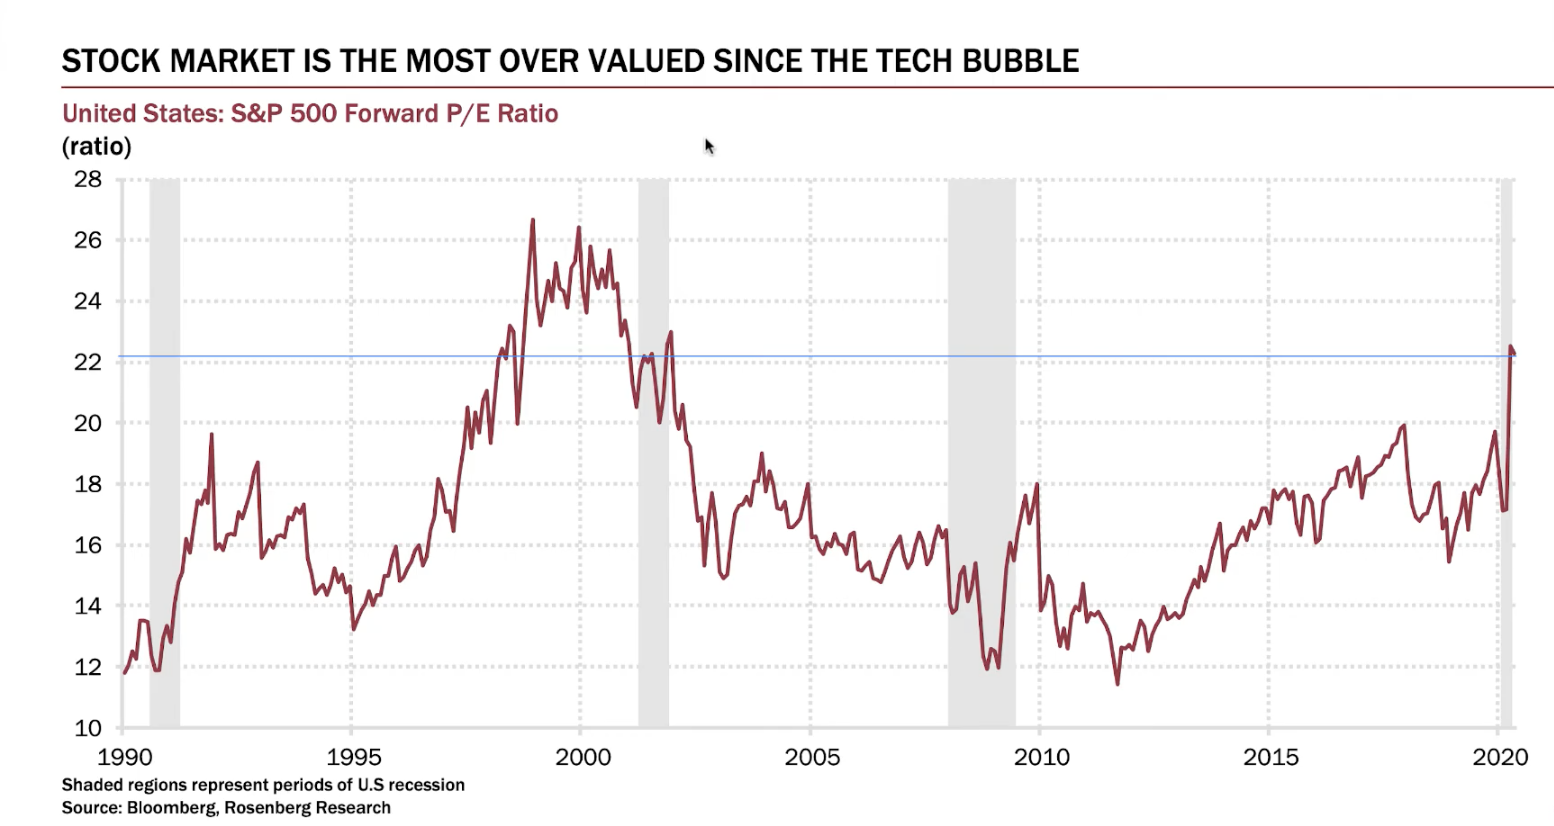 Is 30% overvalued bad?